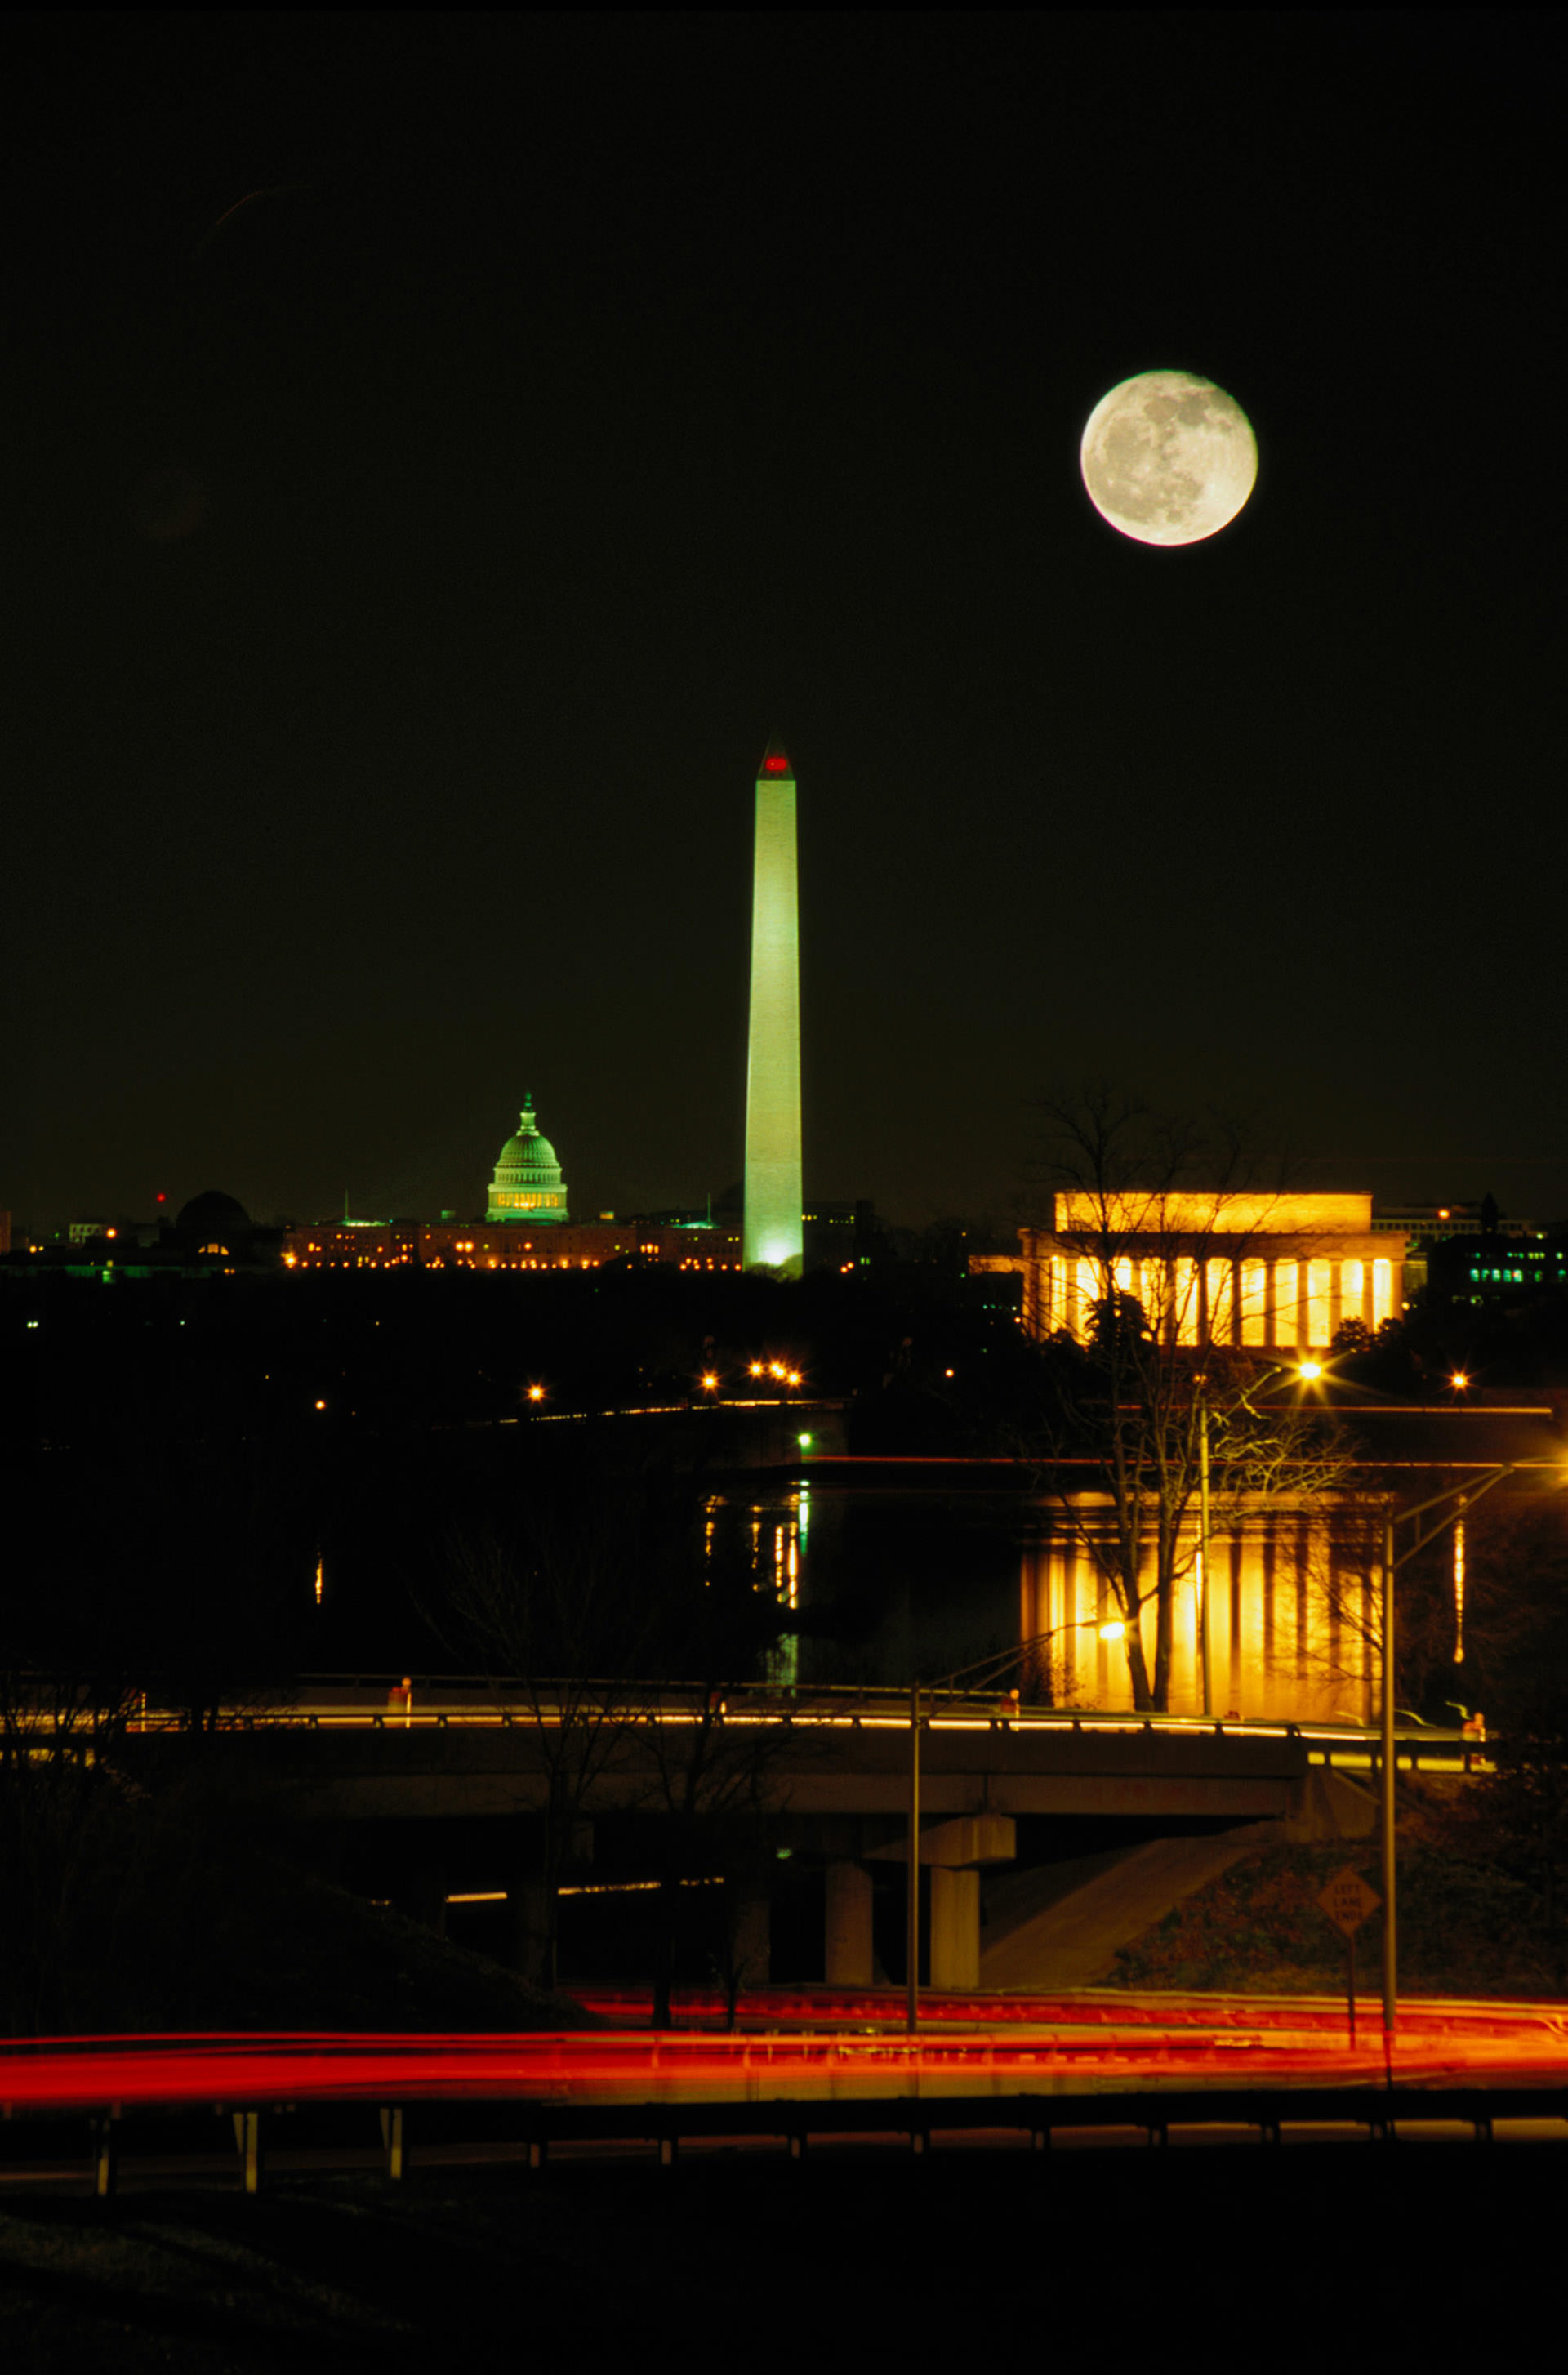 Nightime skyline view of Washington Monument and the moon